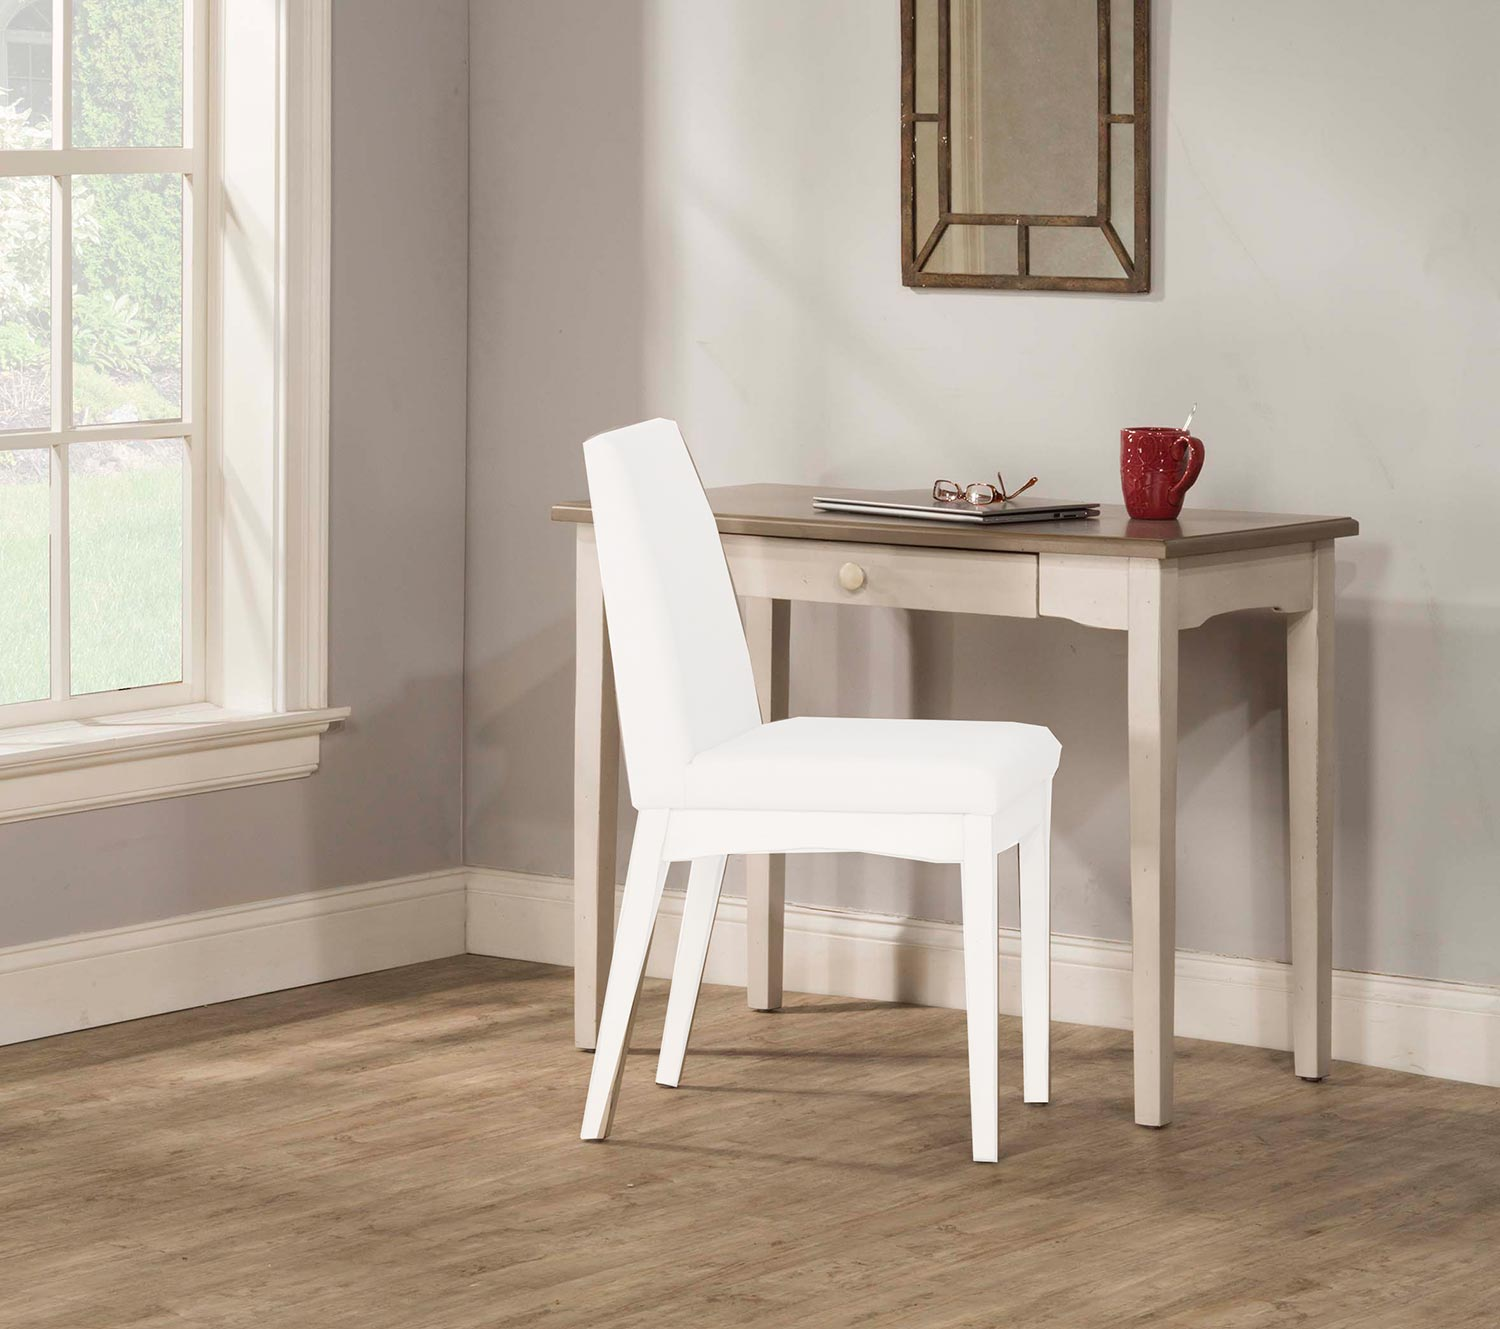 Hillsdale Clarion Desk/Table - Gray/White